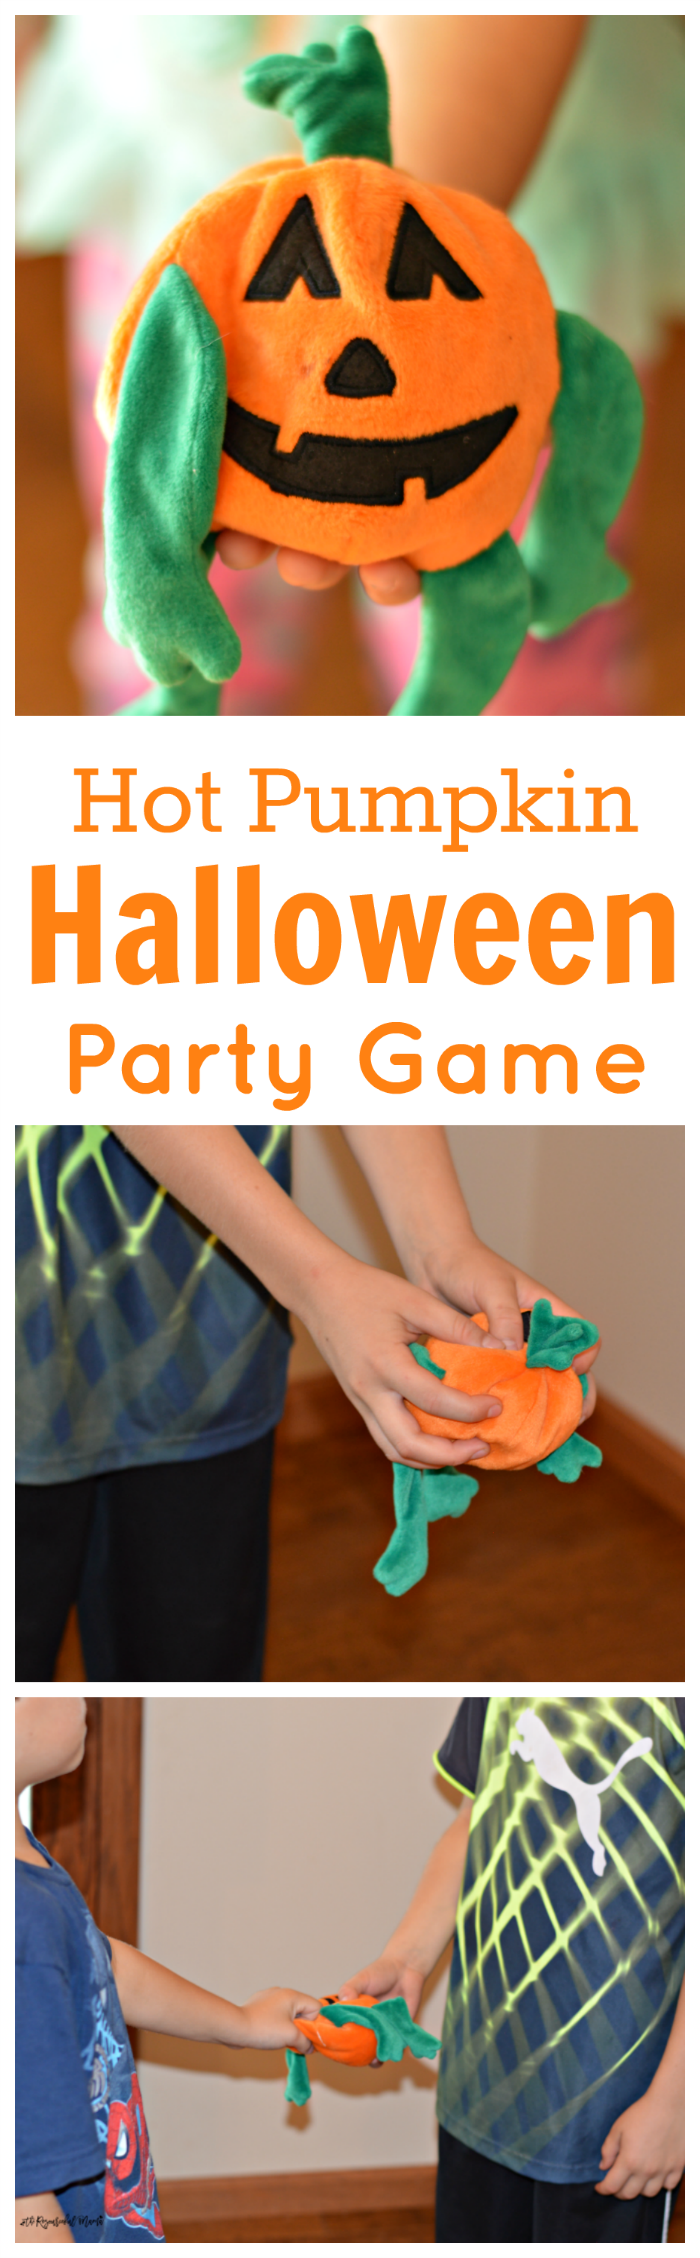 Hot Pumpkin Halloween Party Game